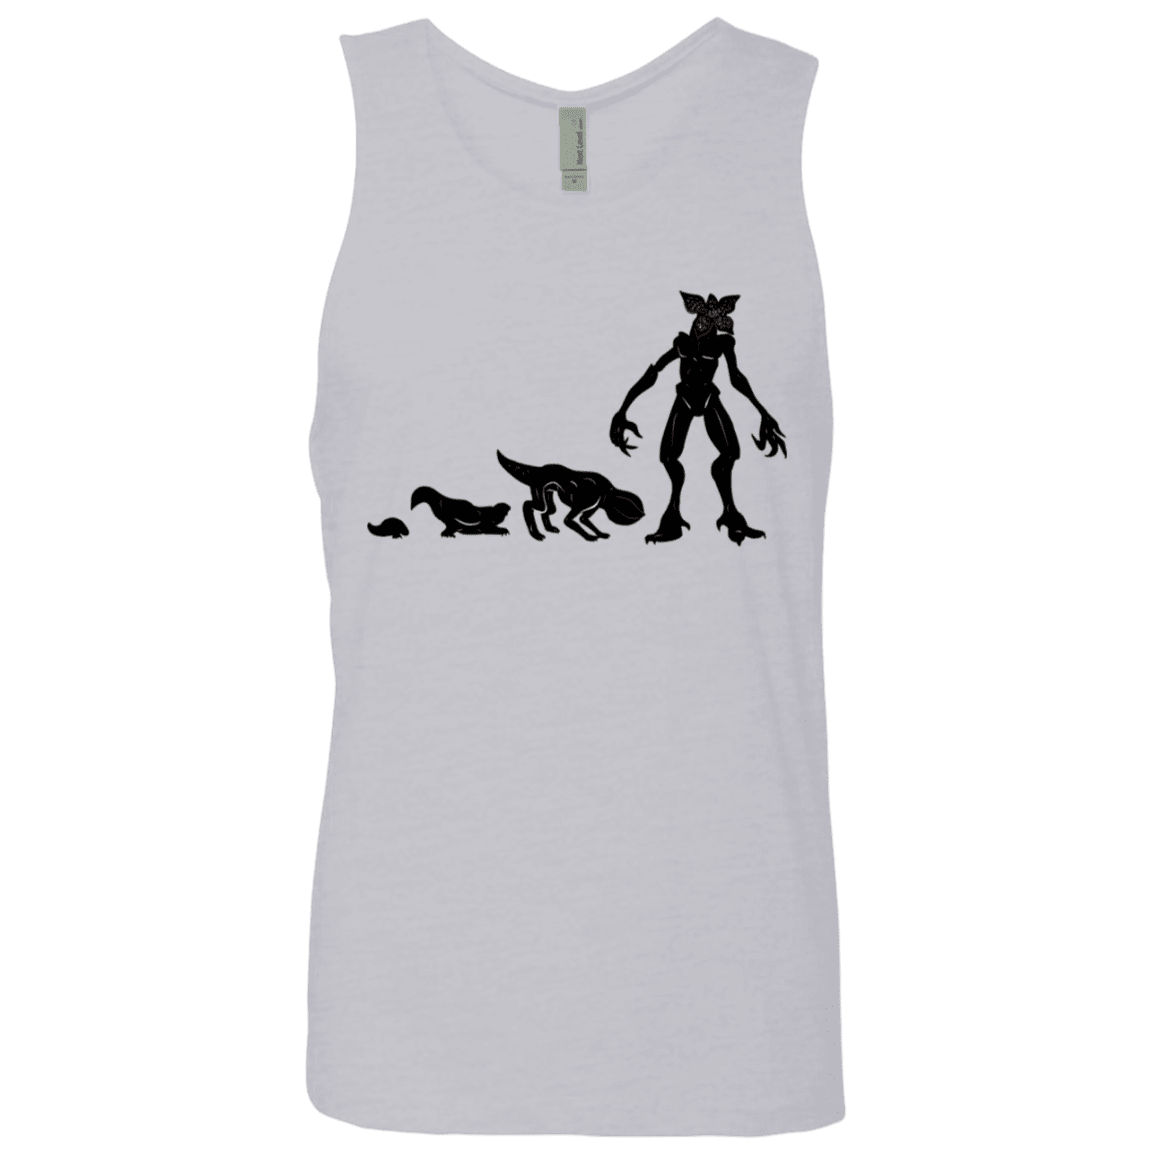 T-Shirts Heather Grey / S Demogorgon Evolution Men's Premium Tank Top